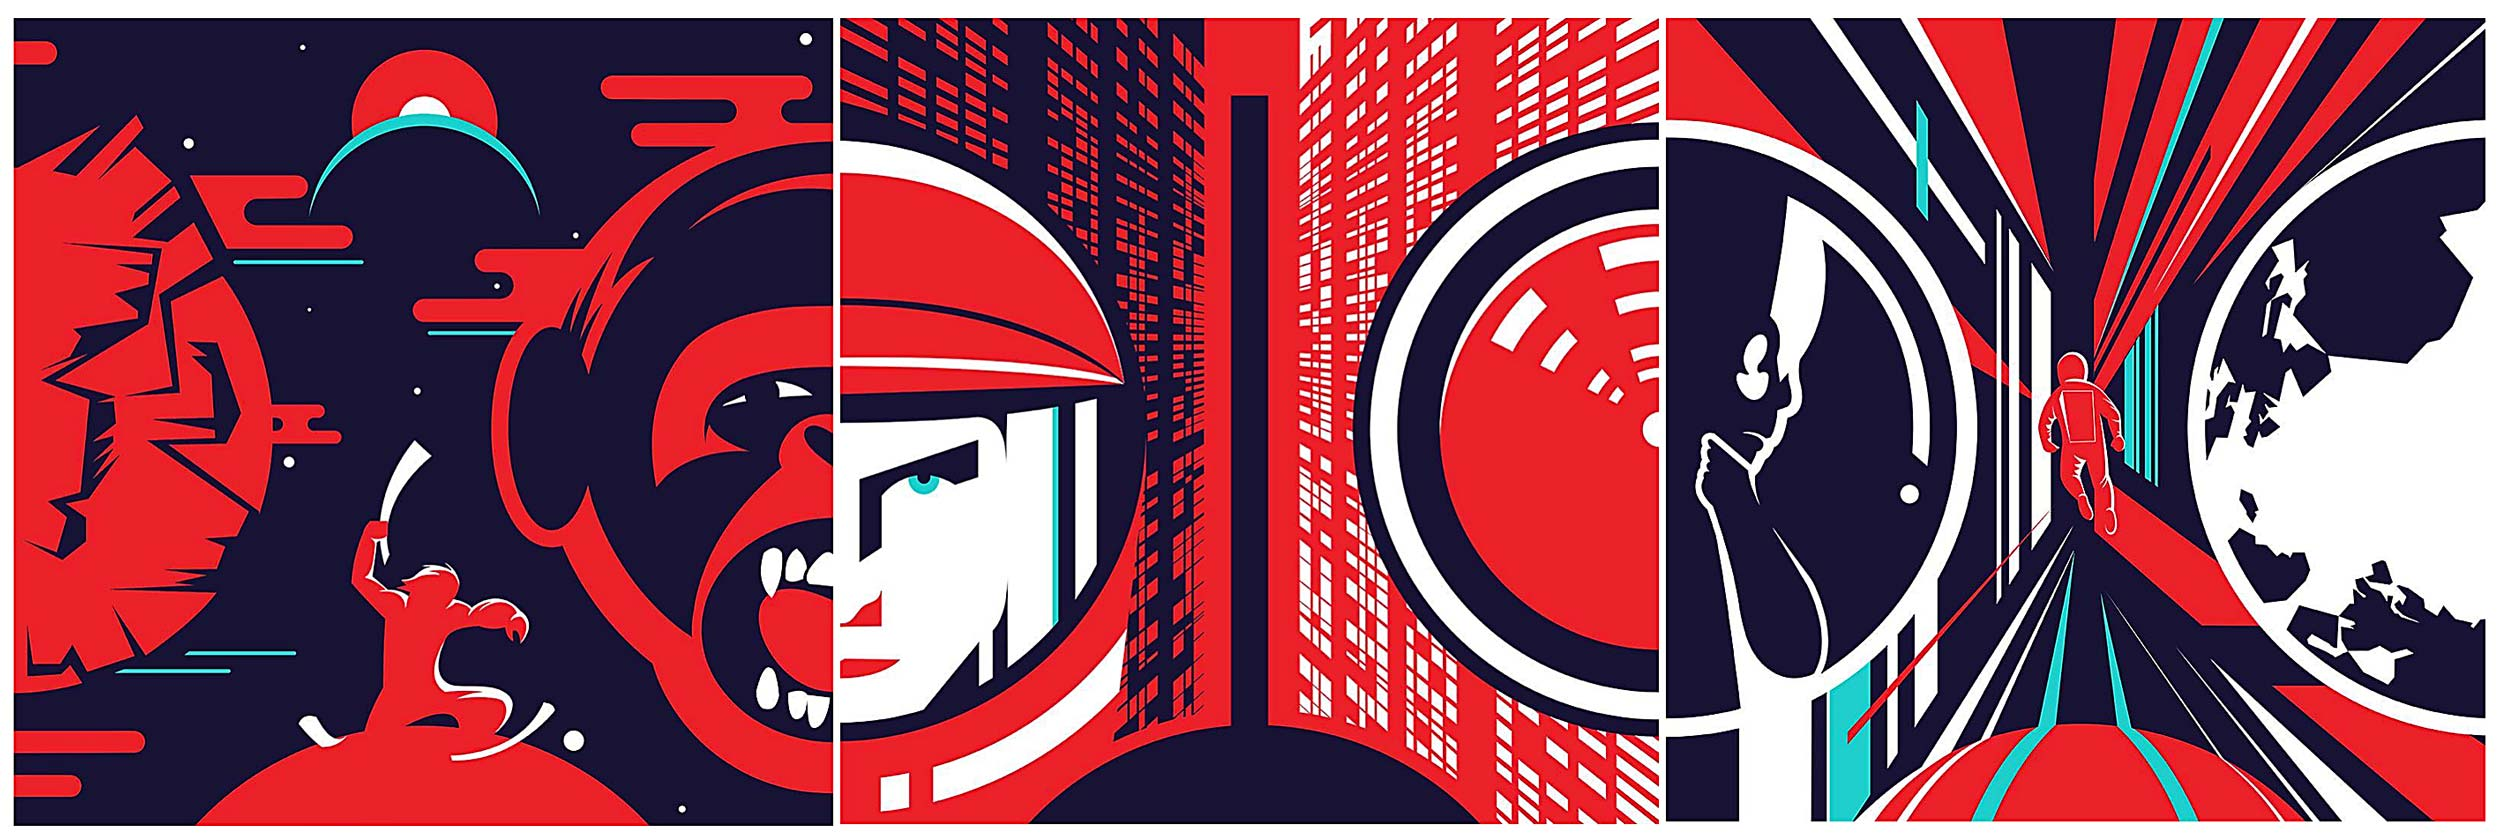 IRL - In Reel Life - A Space Odyssey illustration